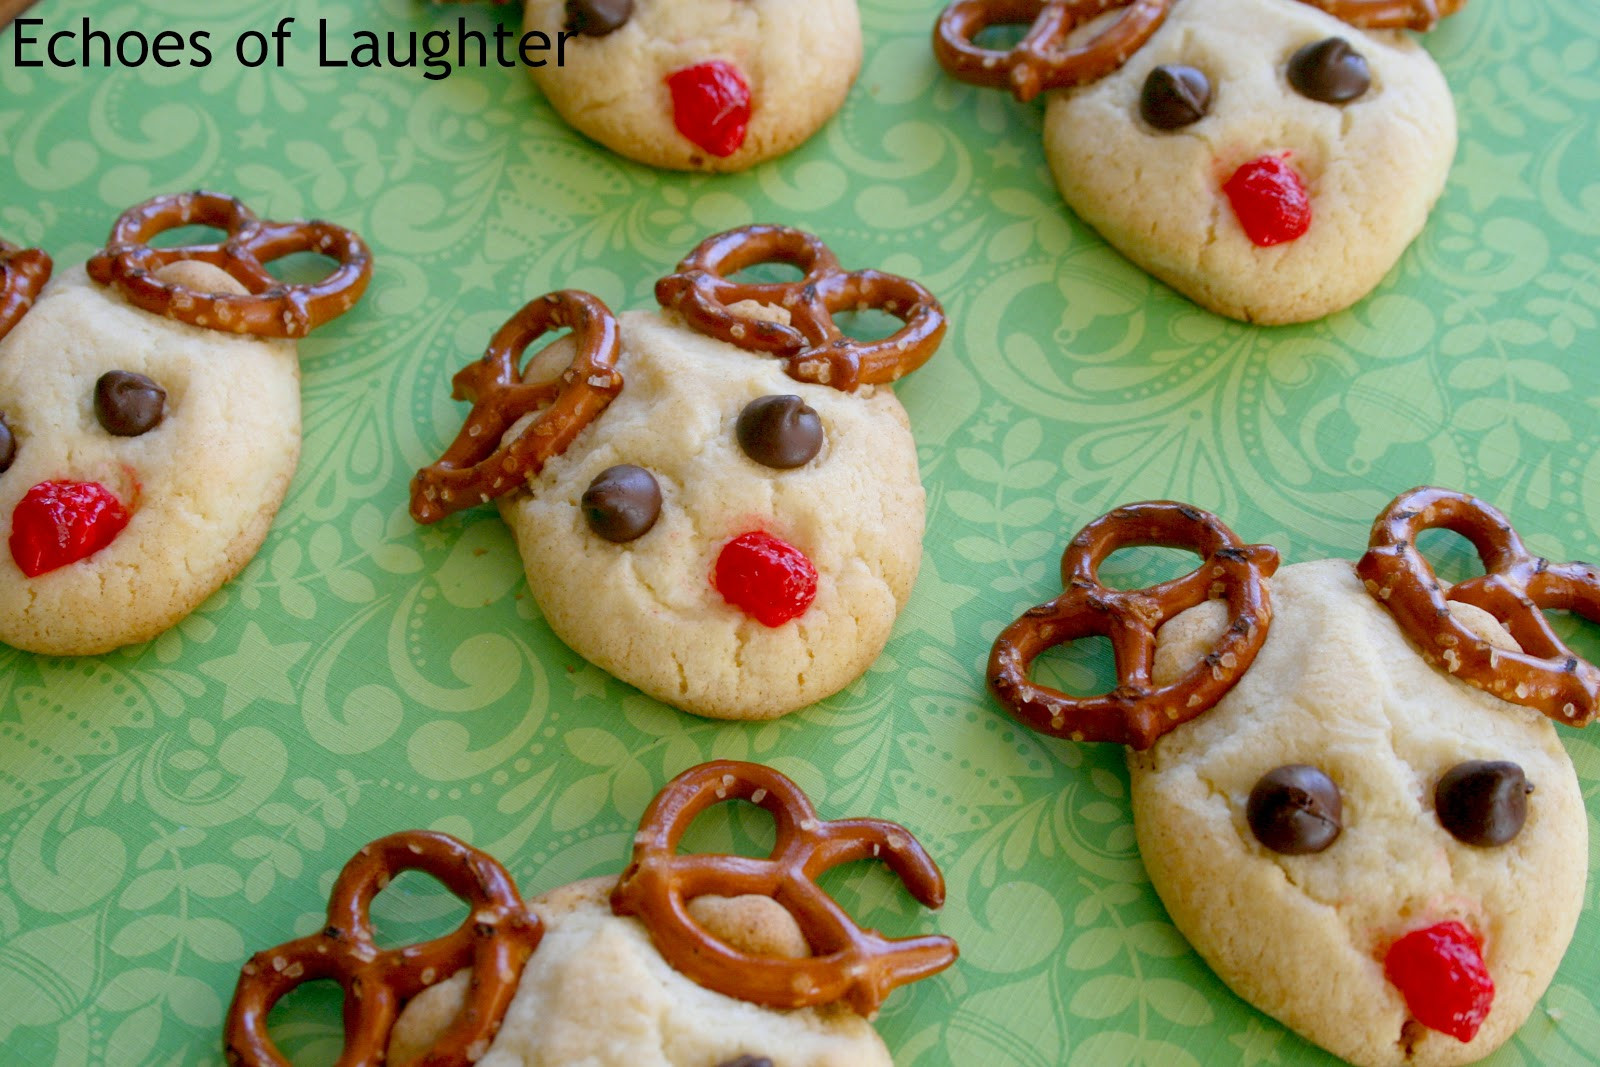 Easy To Make Christmas Cookies  13 Easy Christmas Cookies Echoes of Laughter